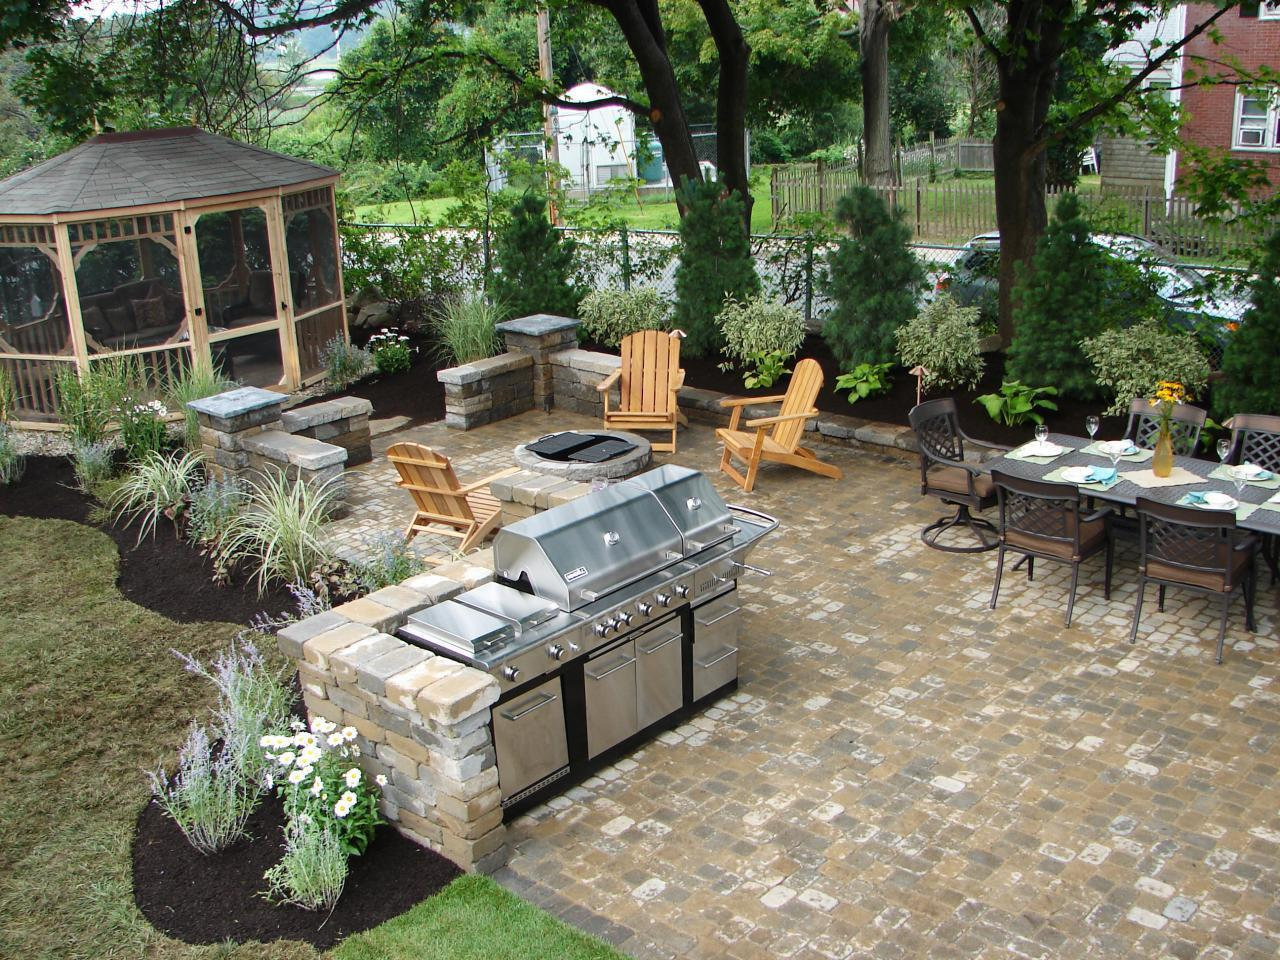 Outdoor Barbecues, Kitchens, Fireplaces, Firepits